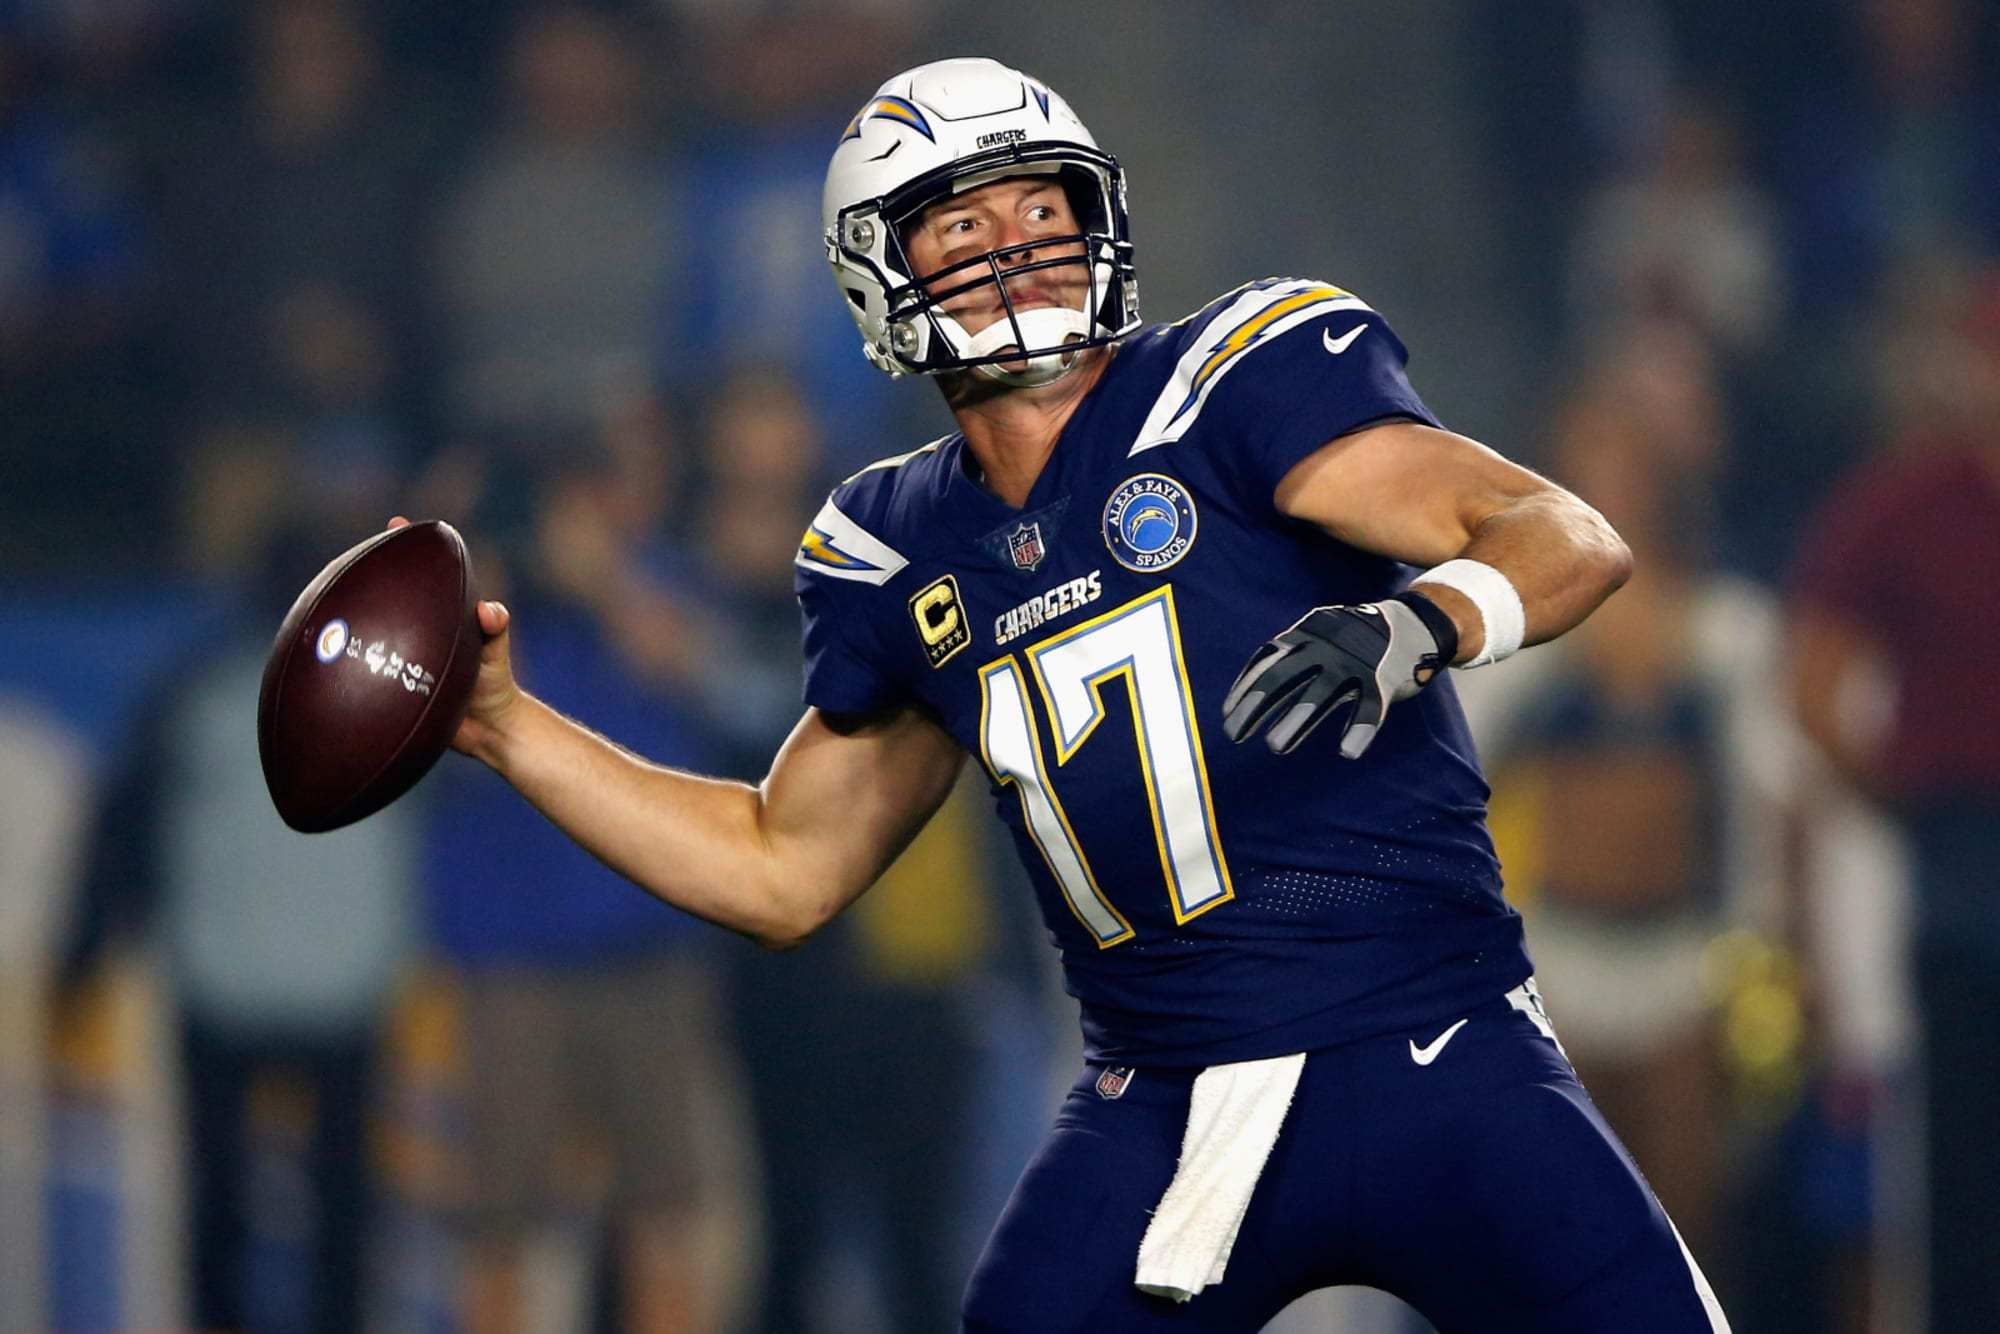 2018 NFL Picks, score predictions for Week 17 - Page 3